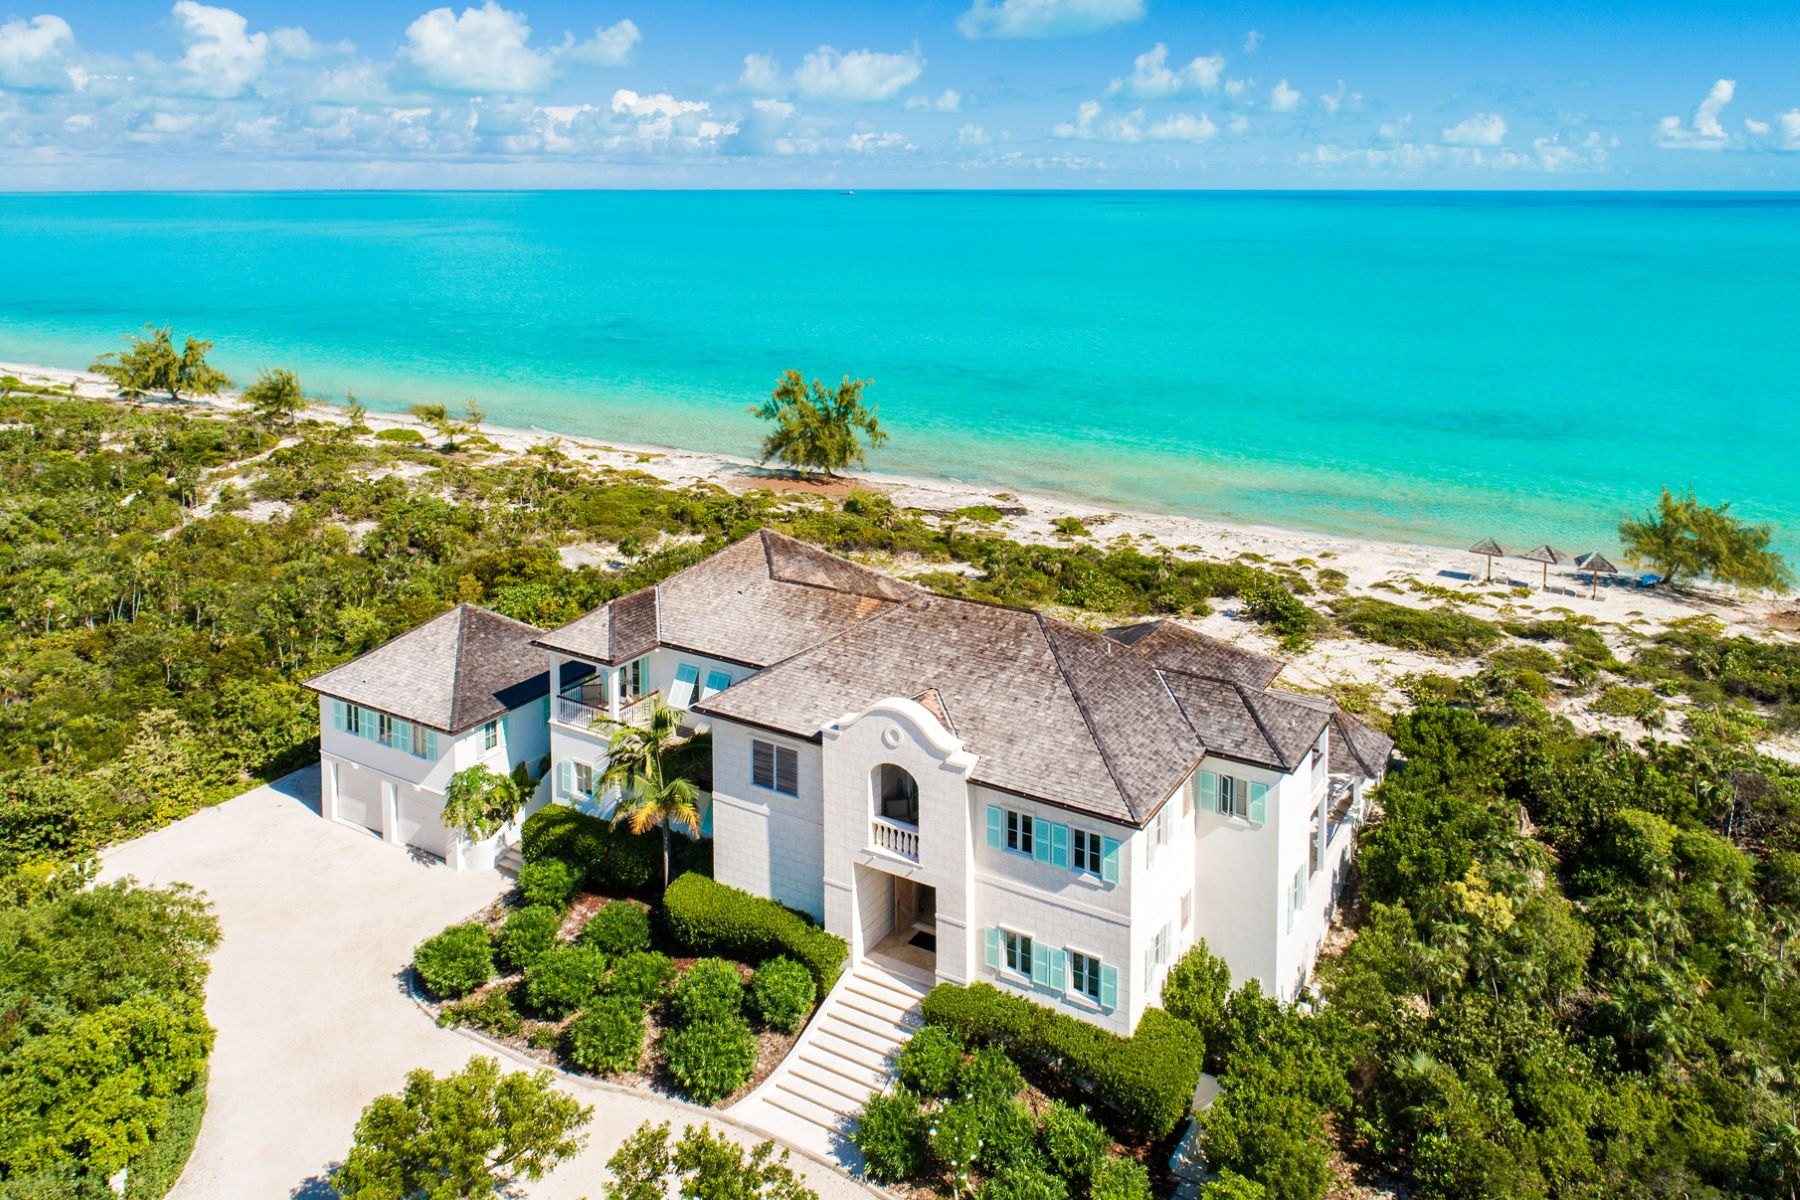 Additional photo for property listing at Long Bay House Long Bay House, Long Bay Beach Drive Long Bay, Providenciales TKCA 1ZZ Îles Turques Et Caïques